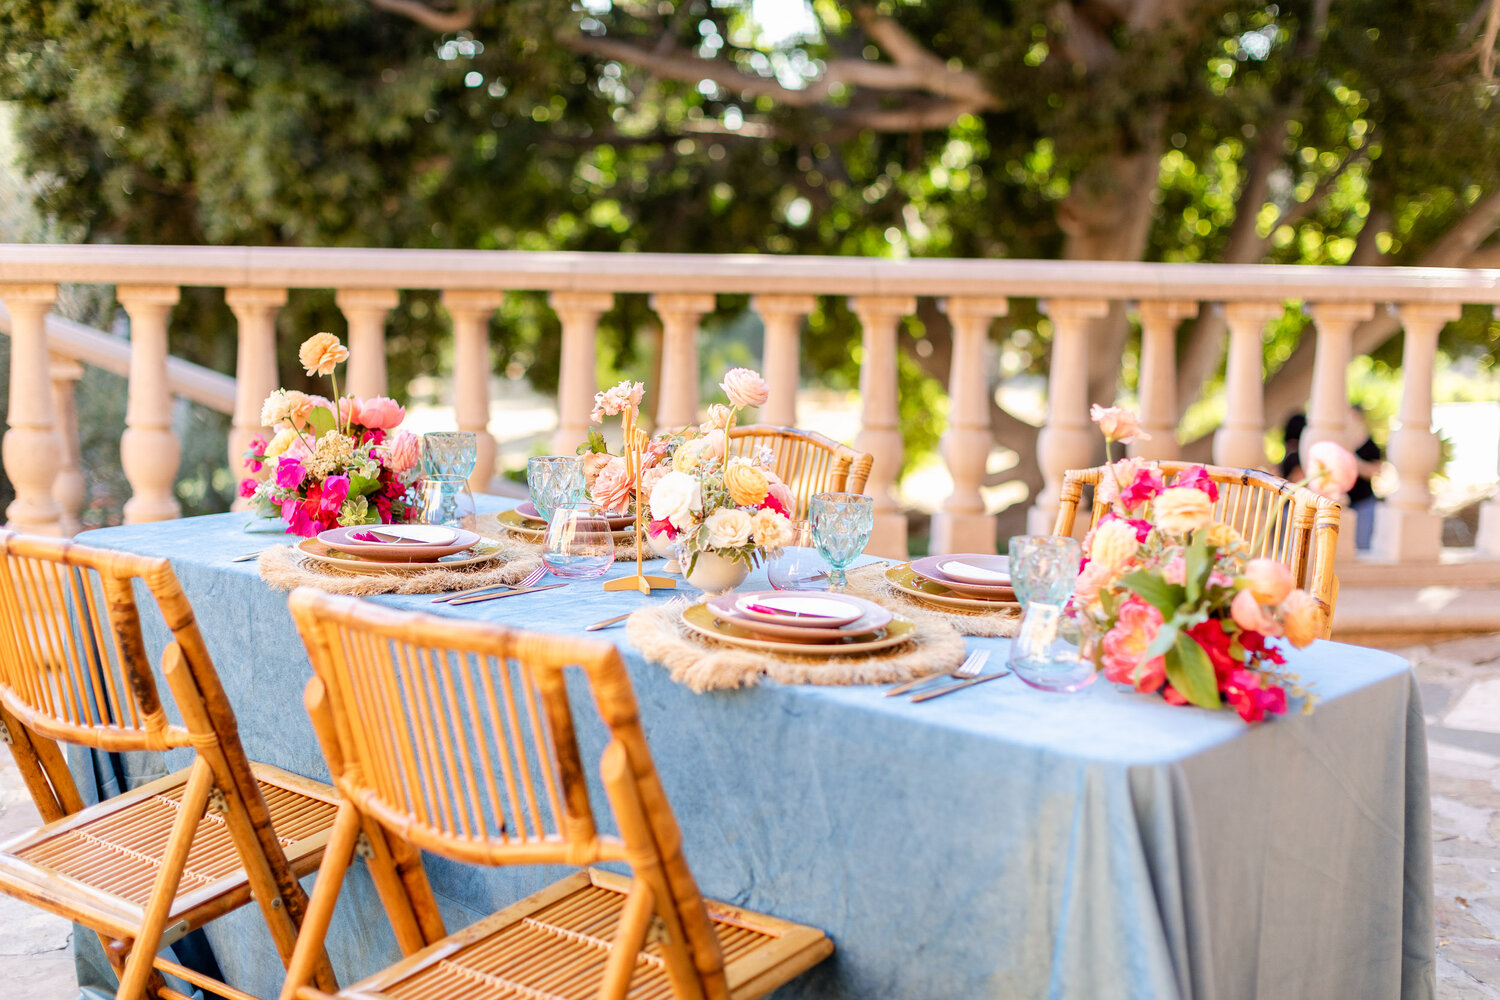 h & l lovely creations bespoke weddings southern california colourful 00020